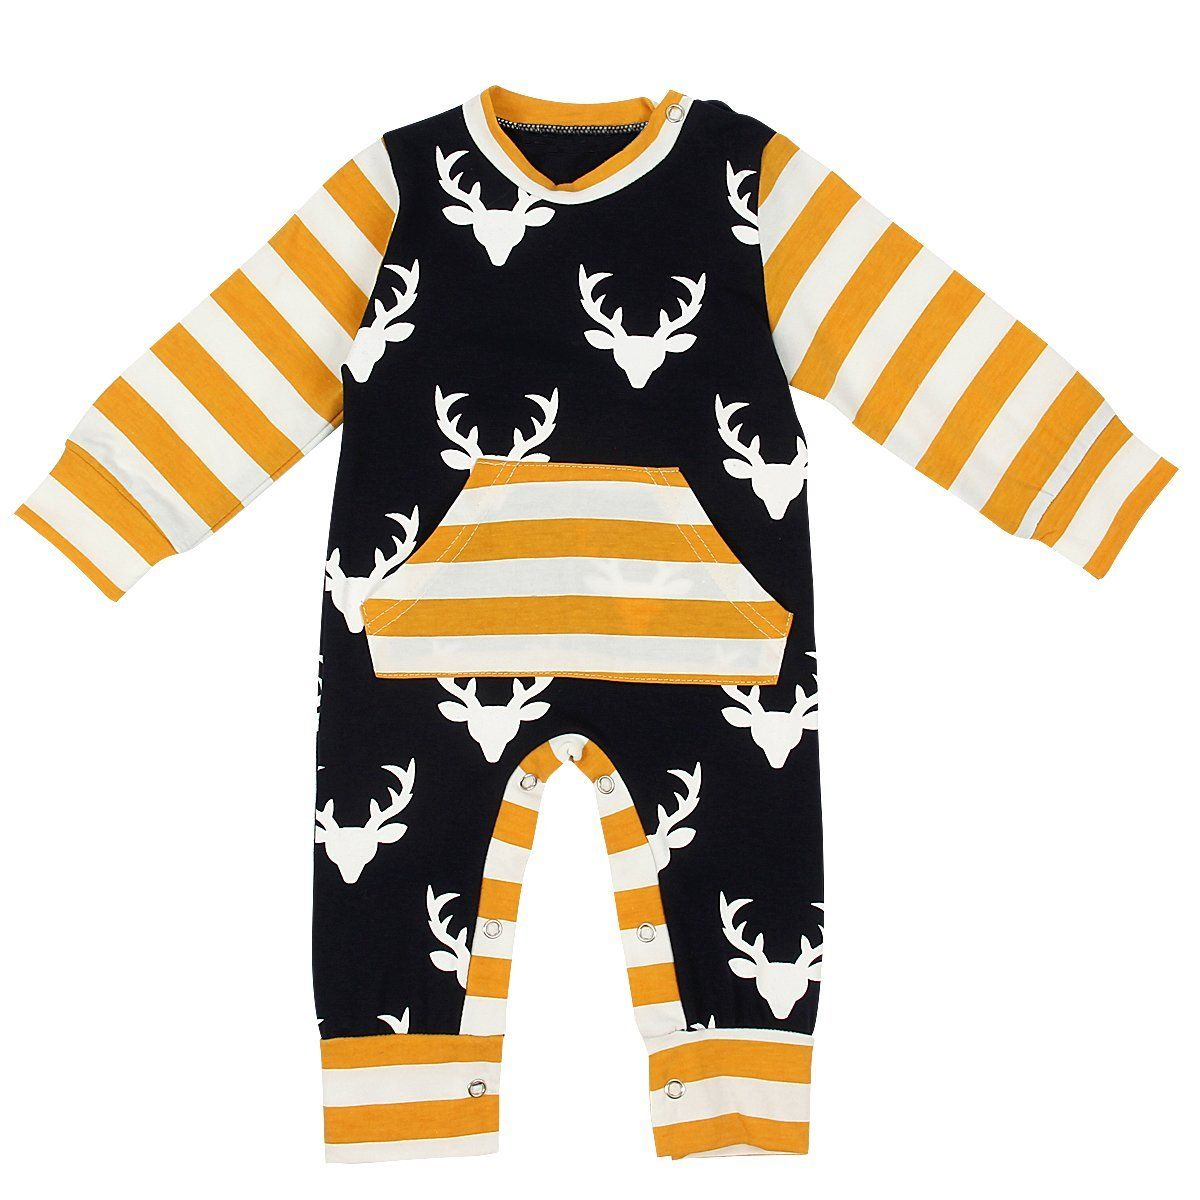 Autumn Newborn Kids Baby Boy Girl Warm Infant Long Sleeve Deer Striped Romper Cotton Jumpsuit Clothes Outfit baby boy clothes kids bodysuit infant coverall newborn romper short sleeve polo shirt cotton children costume outfit suit